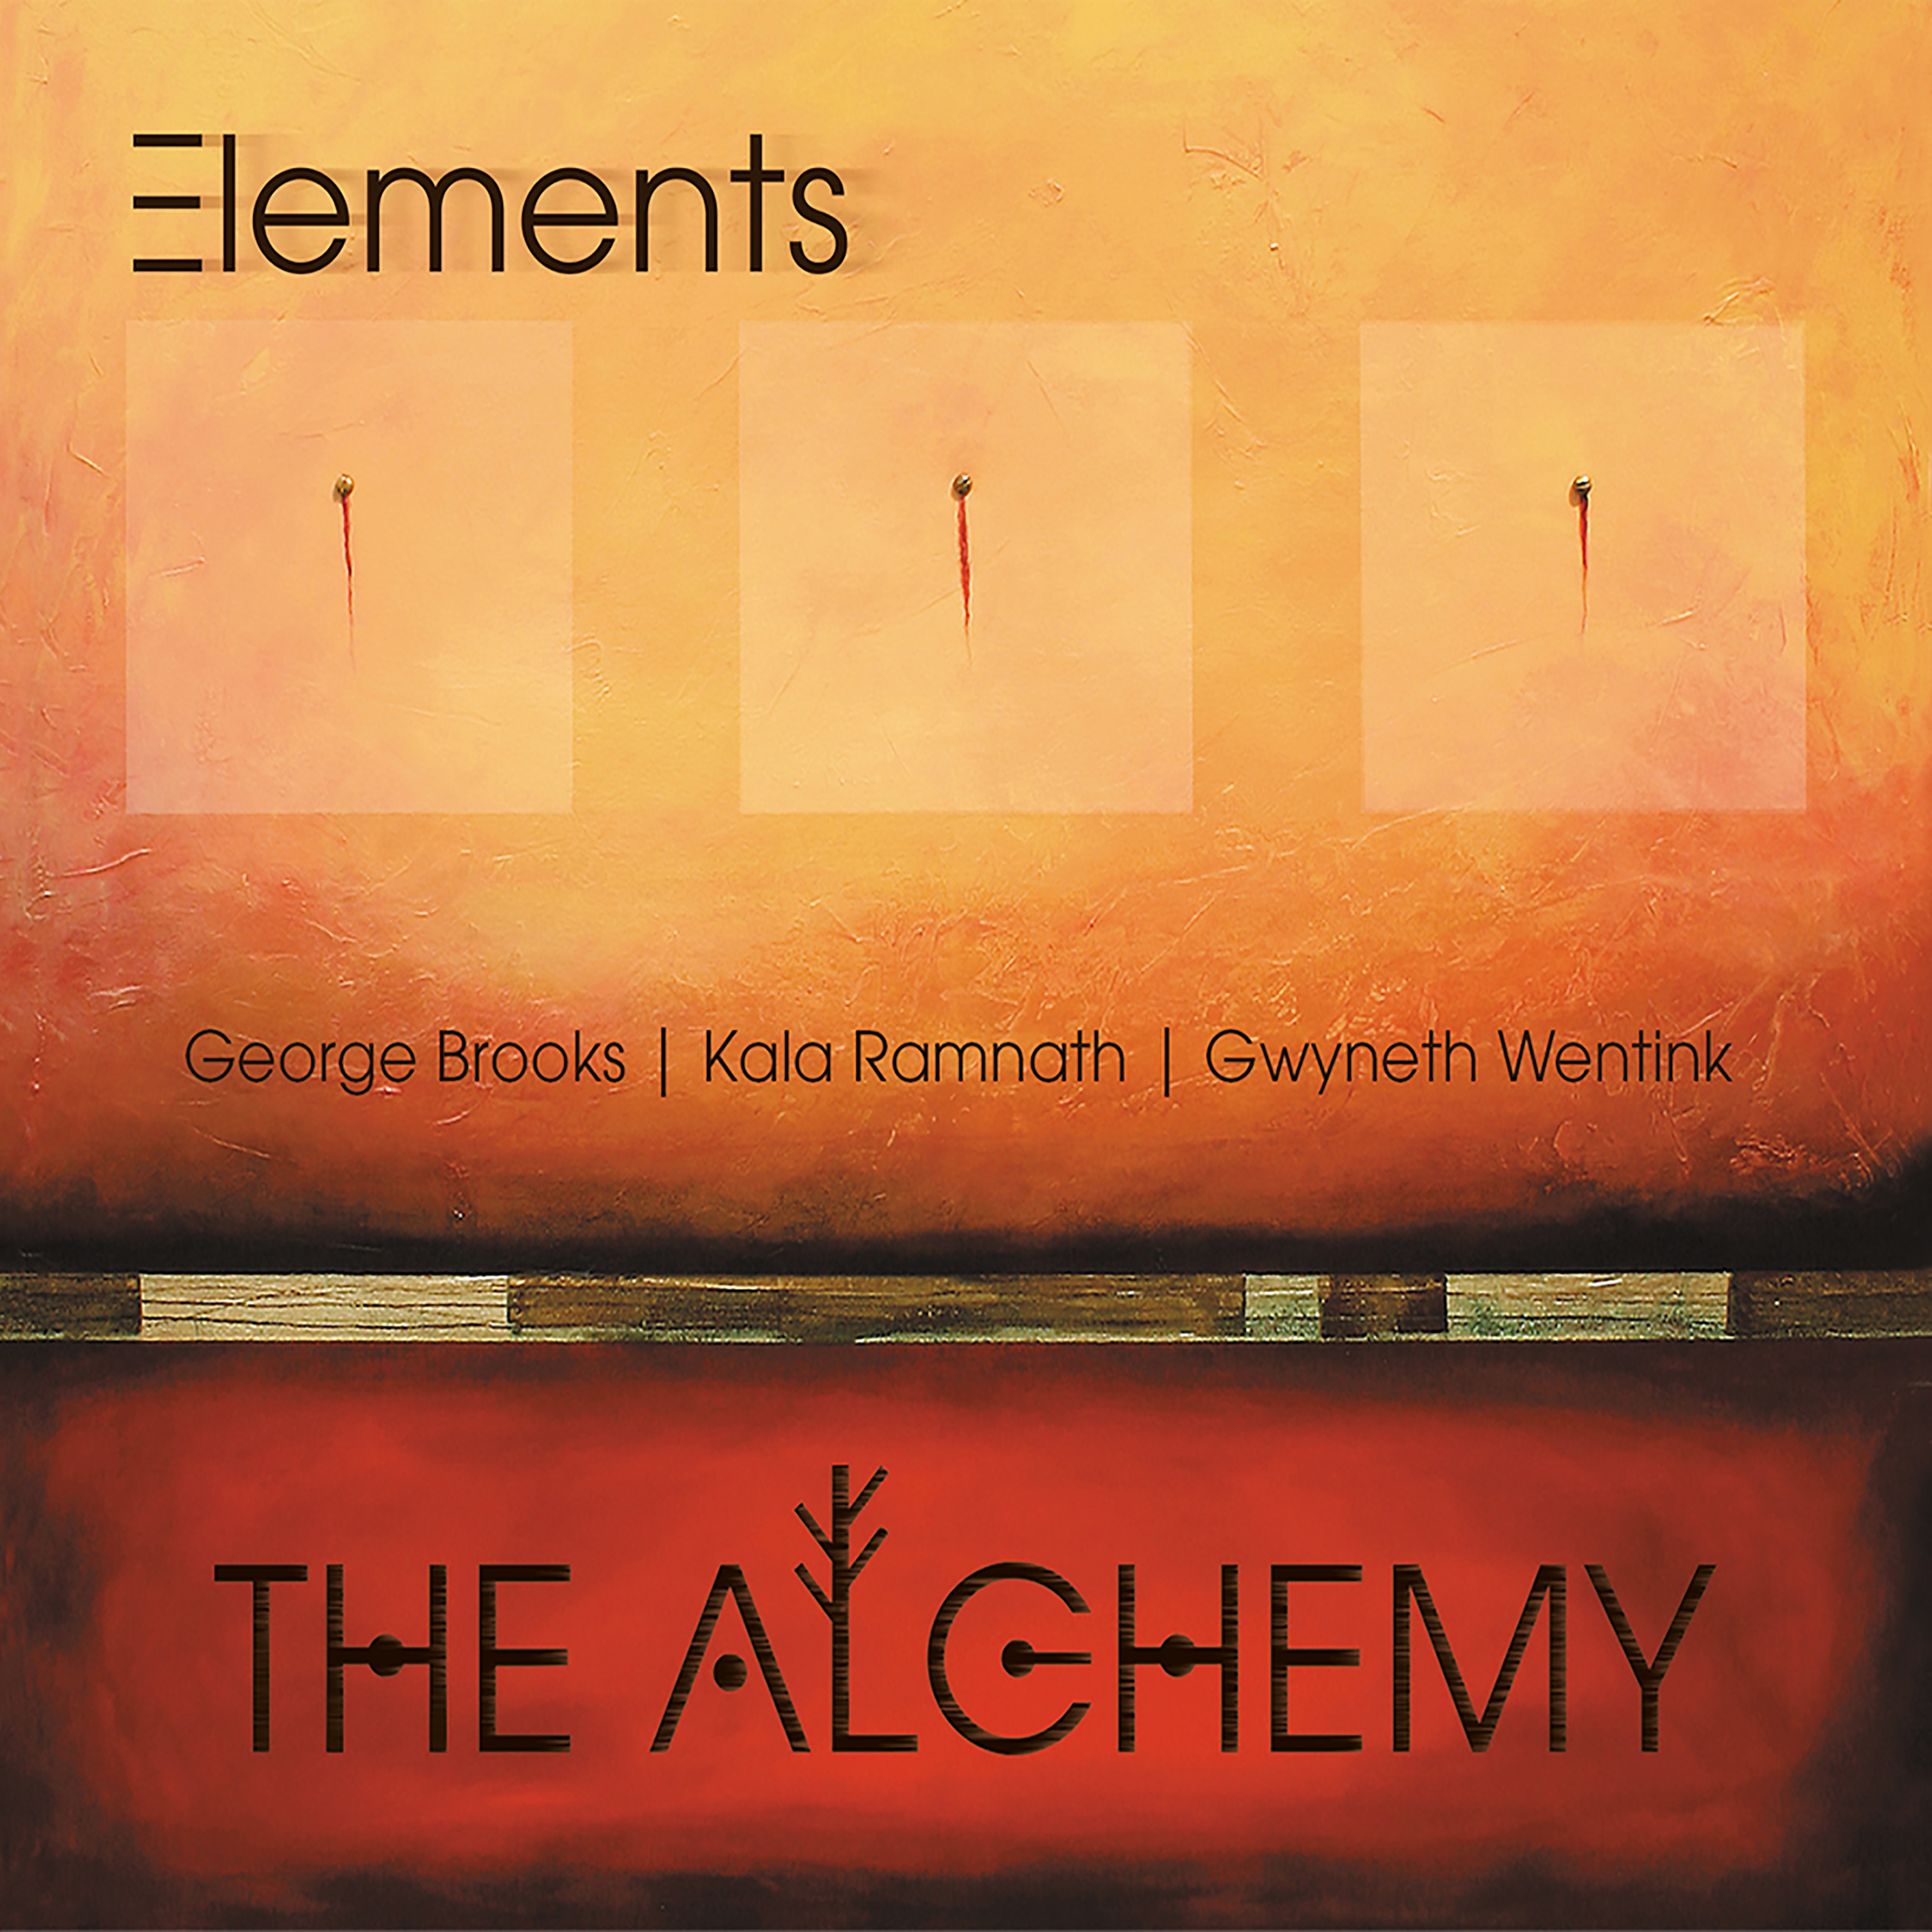 Elements The Alchemy